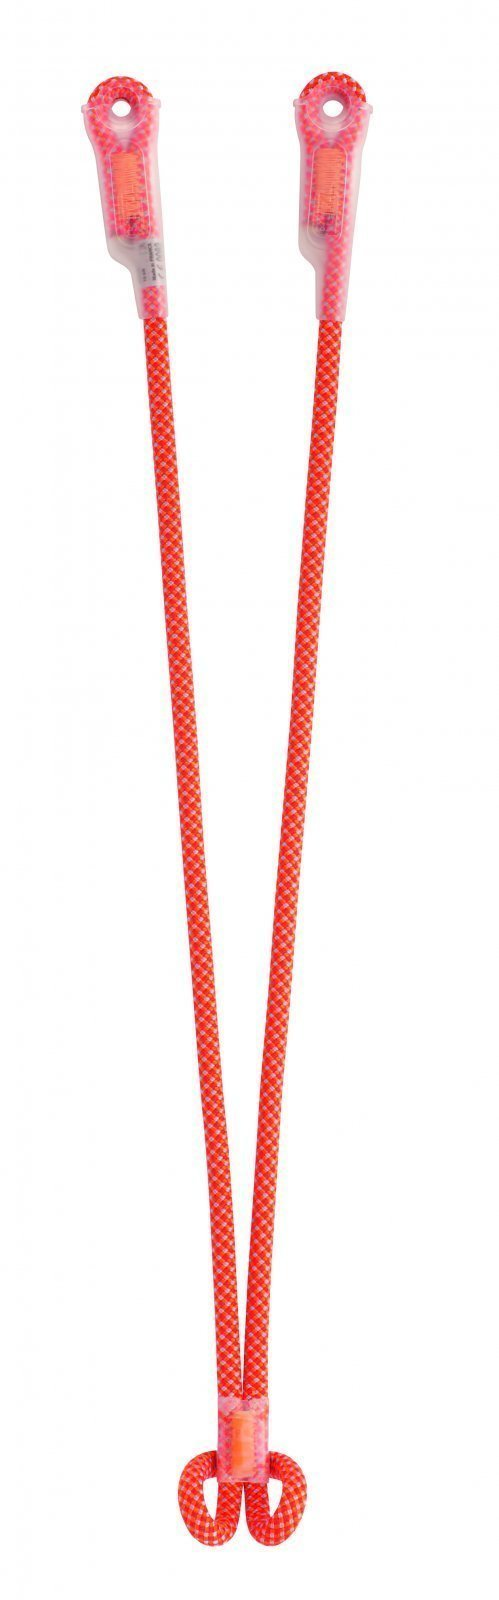 Adventure Park Lanyards